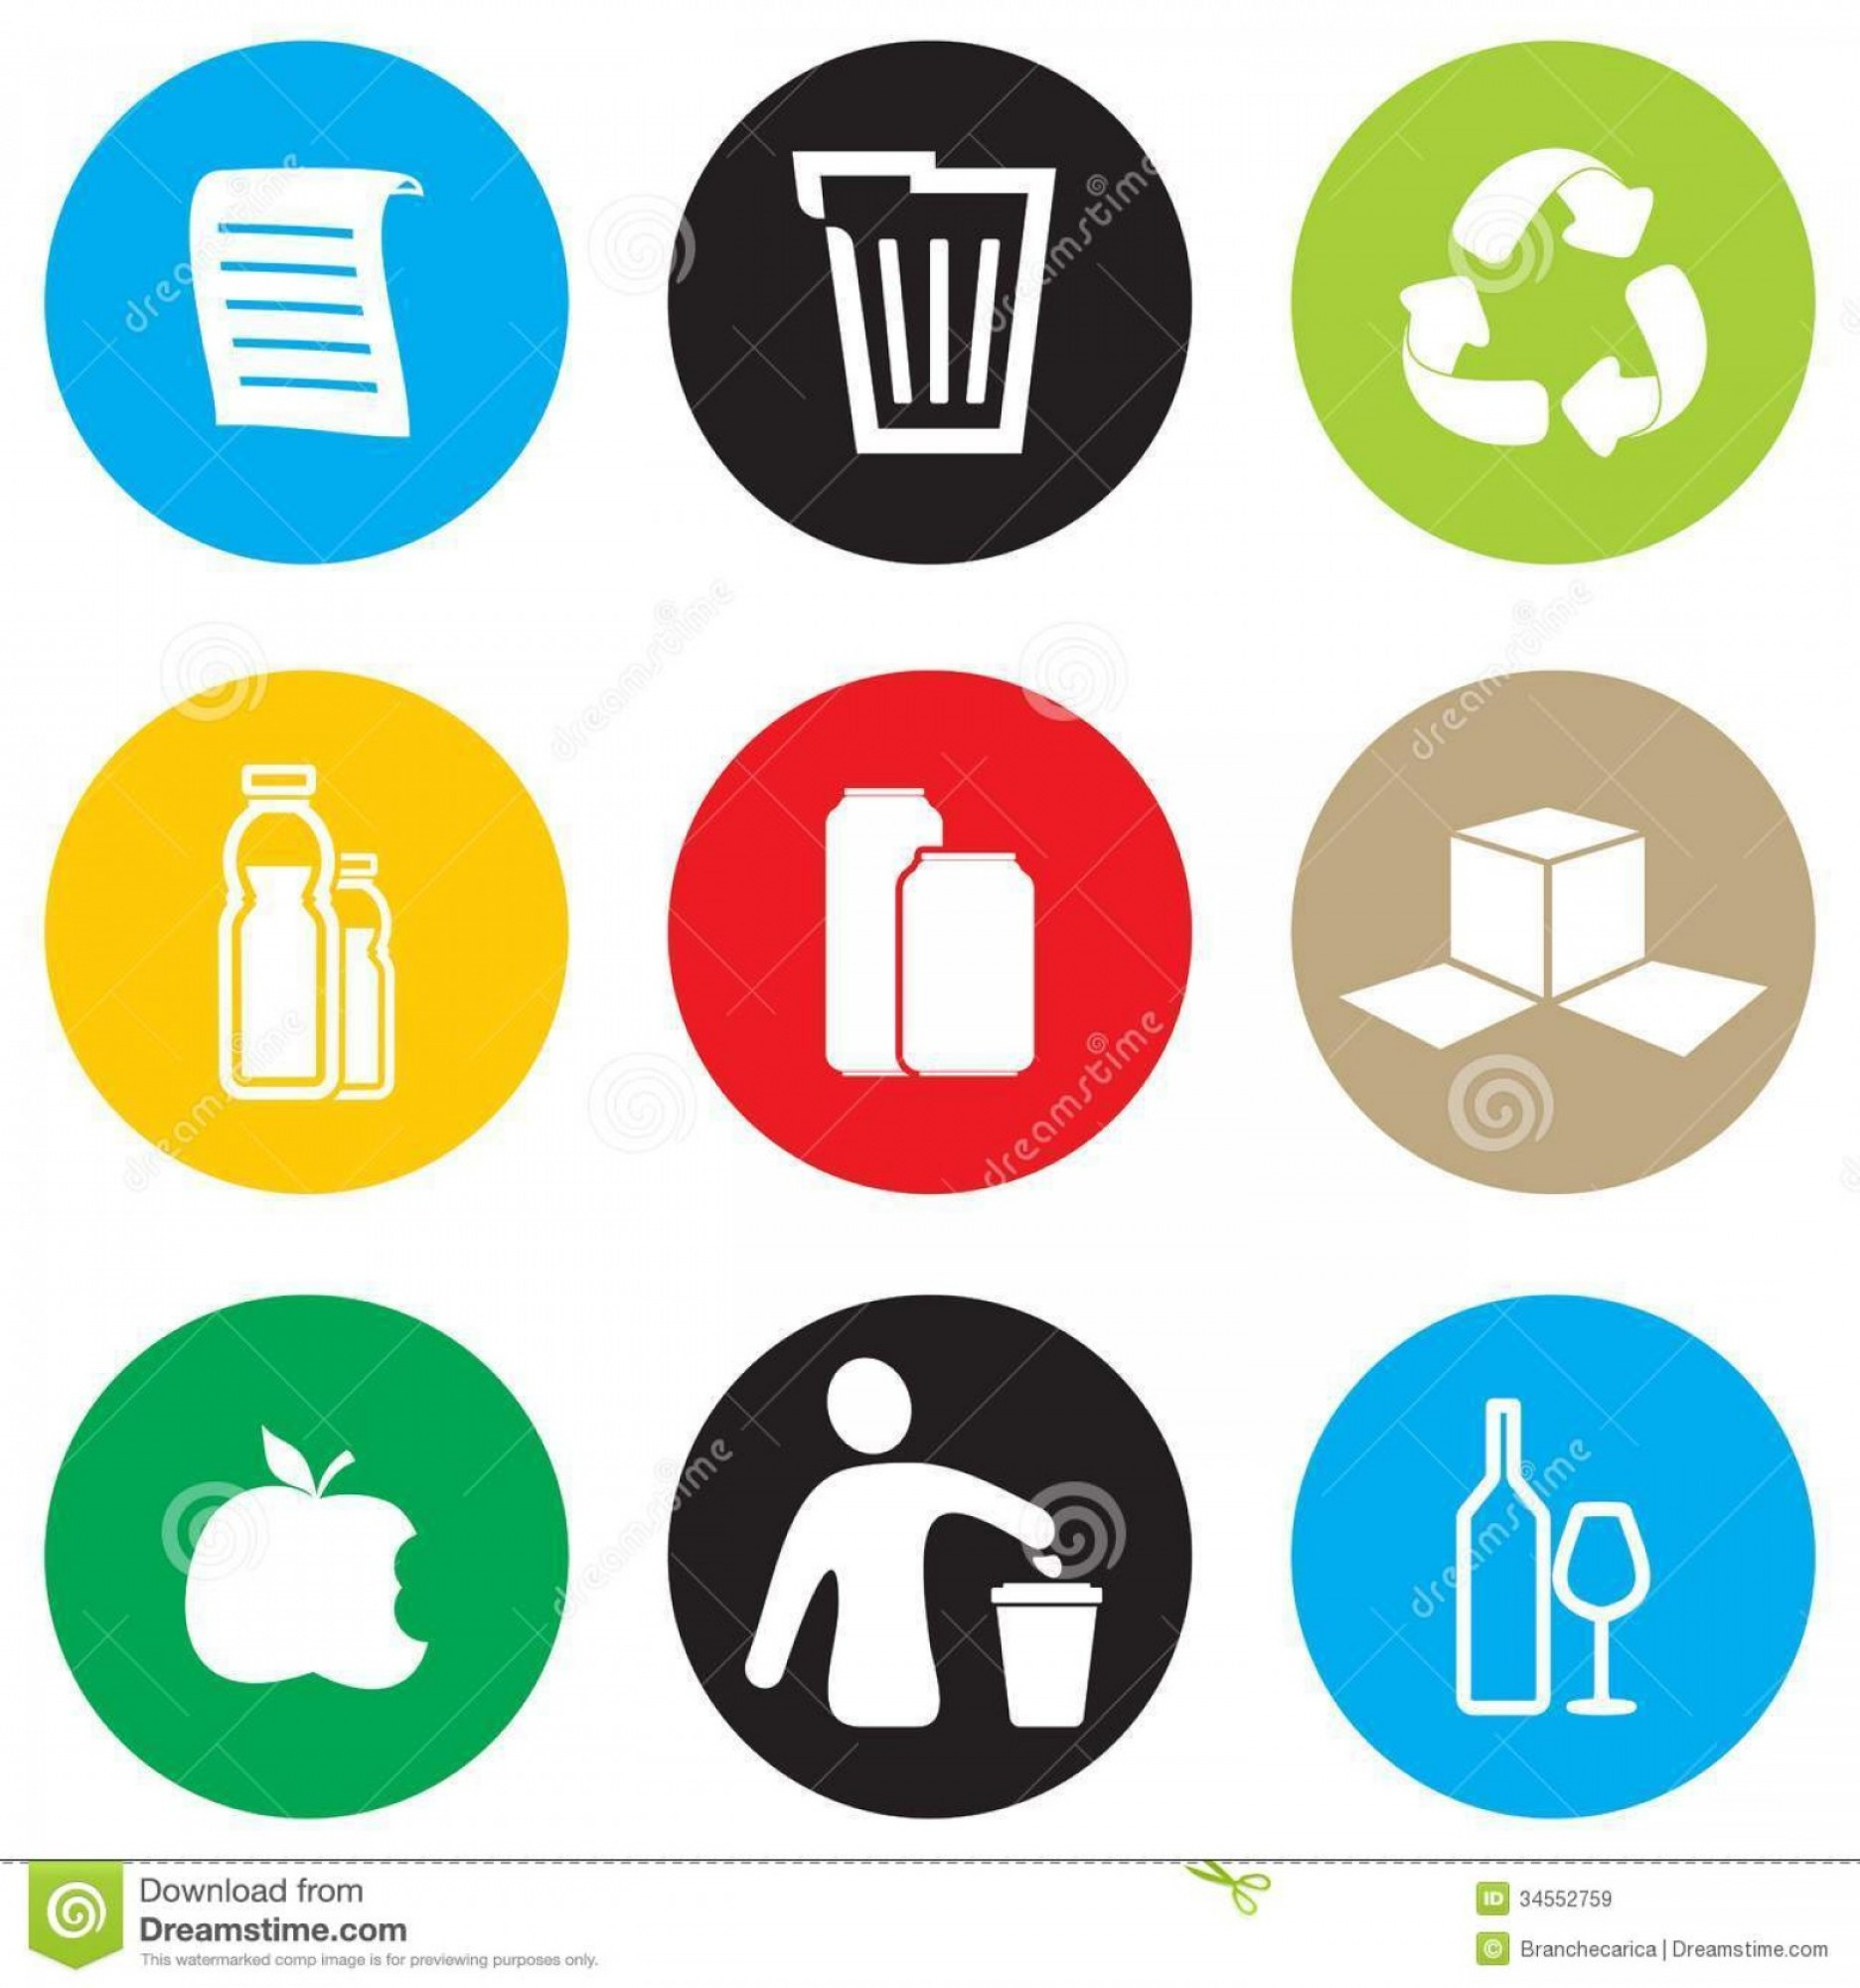 Recycle Icon Vector Red: Royalty Free Stock Images Recycling Icon Set Vector Illustration Image